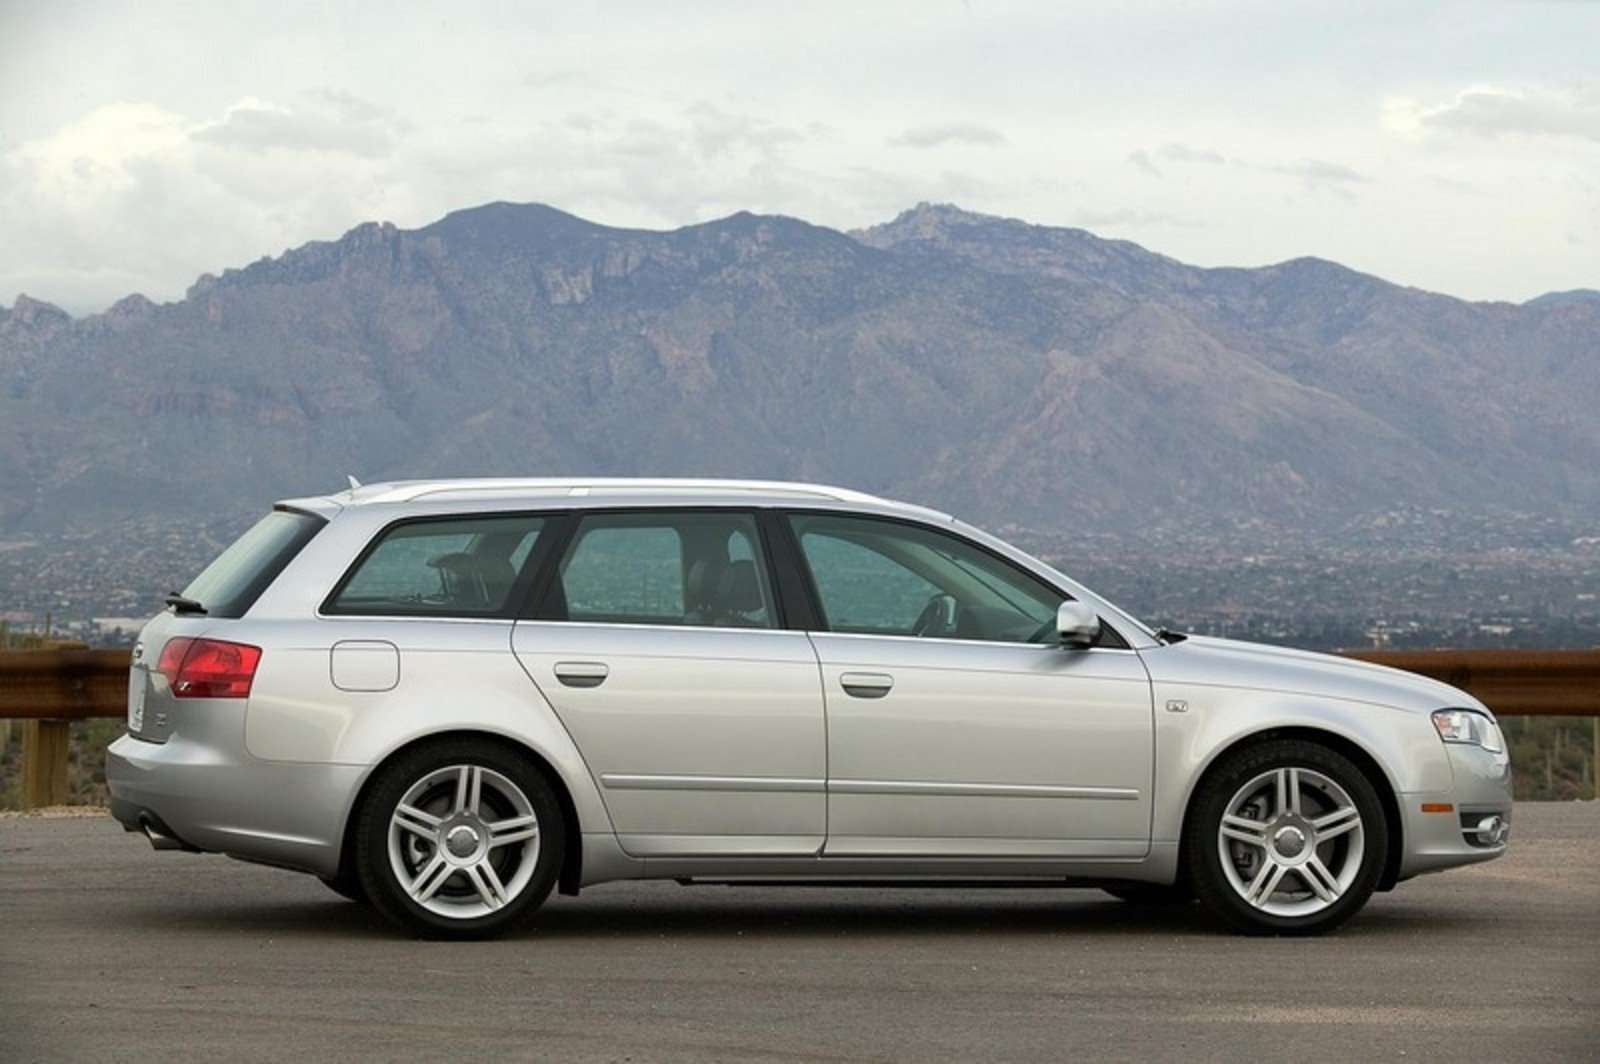 2006 audi a4 wagon picture 45156 car review top speed. Black Bedroom Furniture Sets. Home Design Ideas